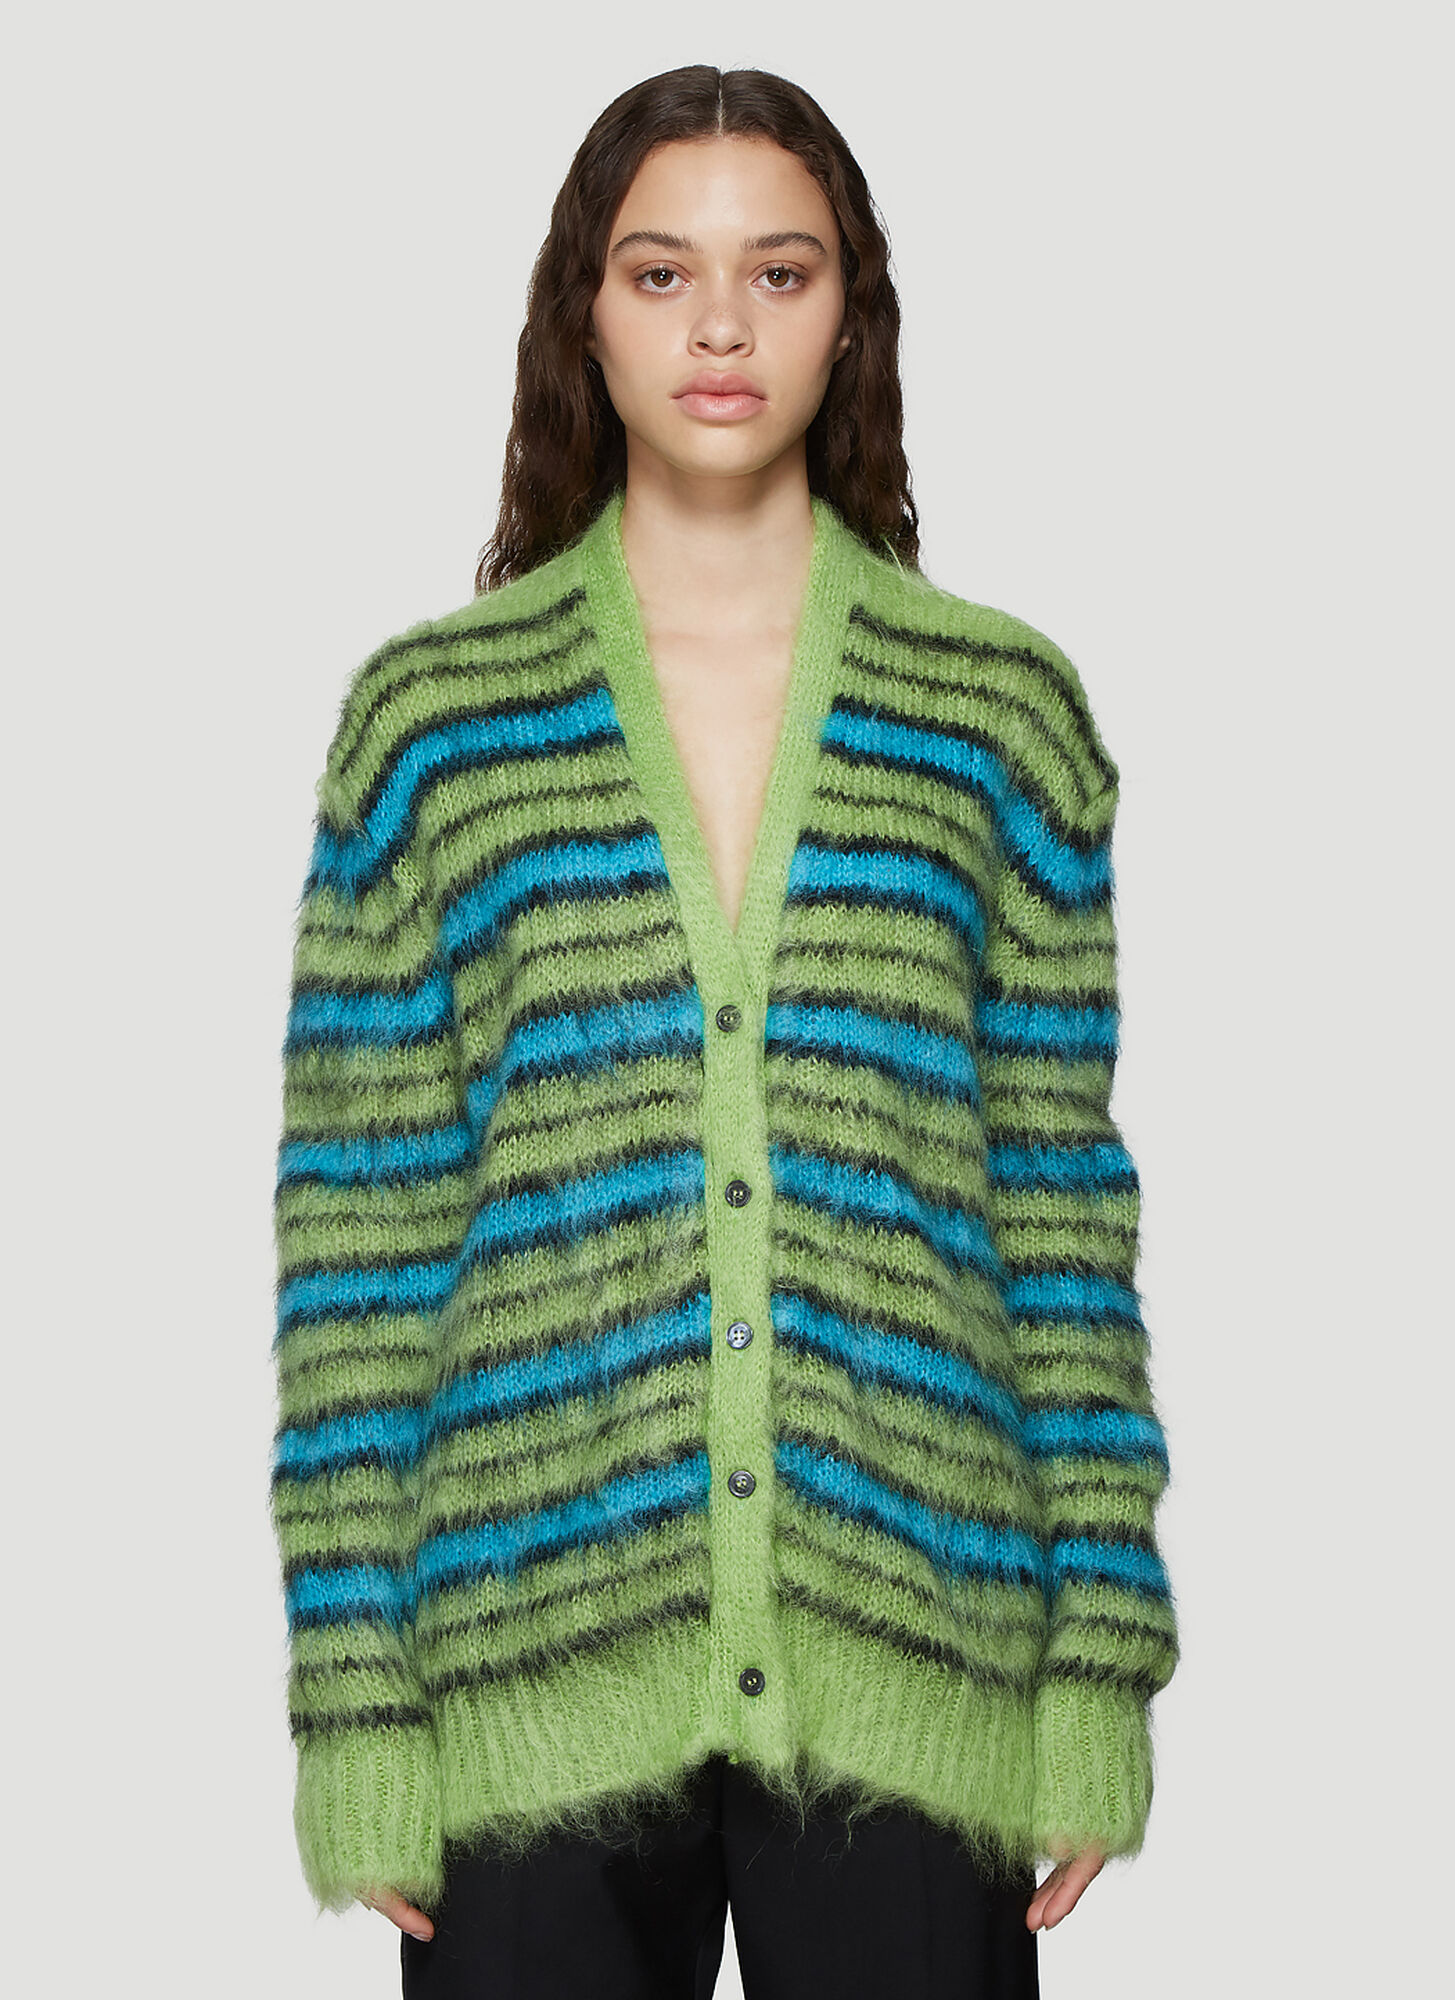 Marni Brushed Knit Striped Cardigan in Green